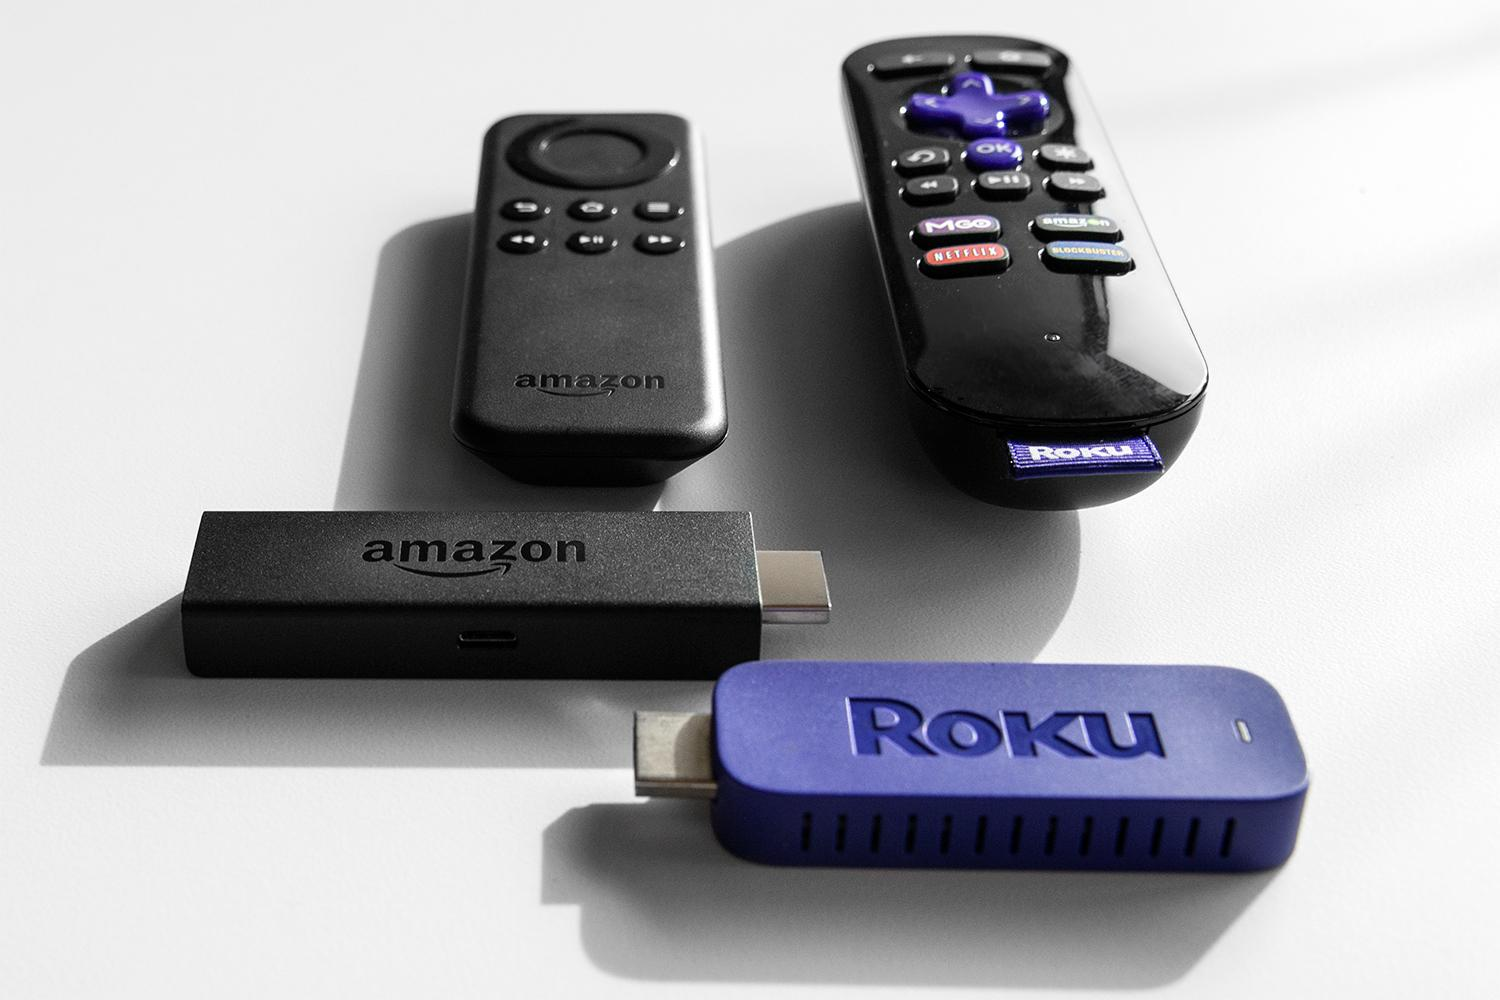 Amazon Fire Tv Stick Vs Roku Streaming Stick Digital Trends